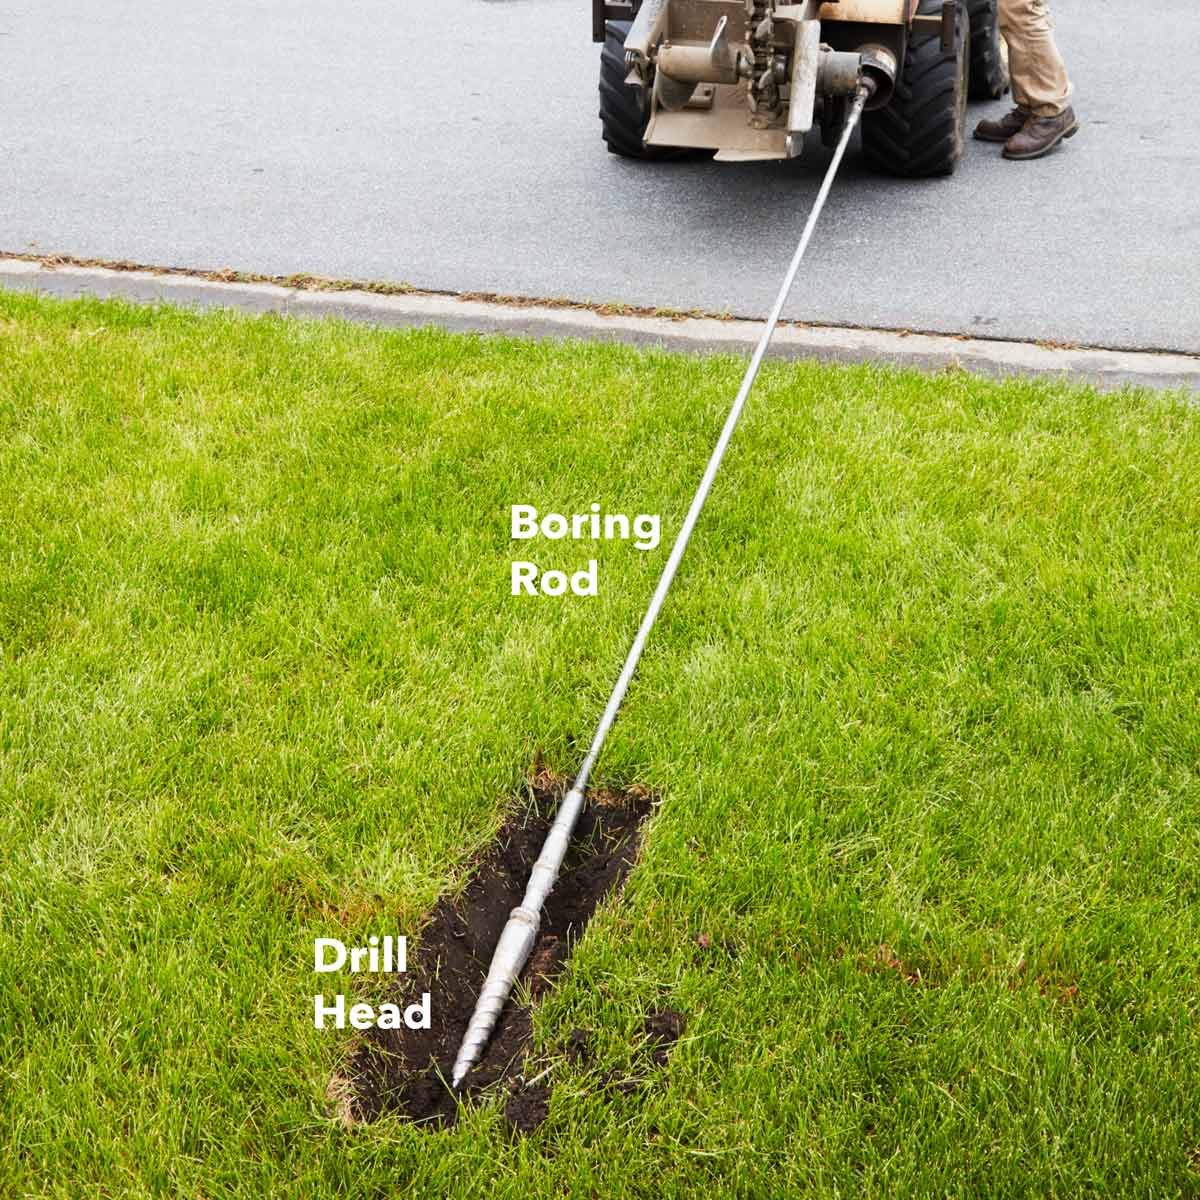 How to Install an Irrigation System in 11 Easy Steps | Family Handyman